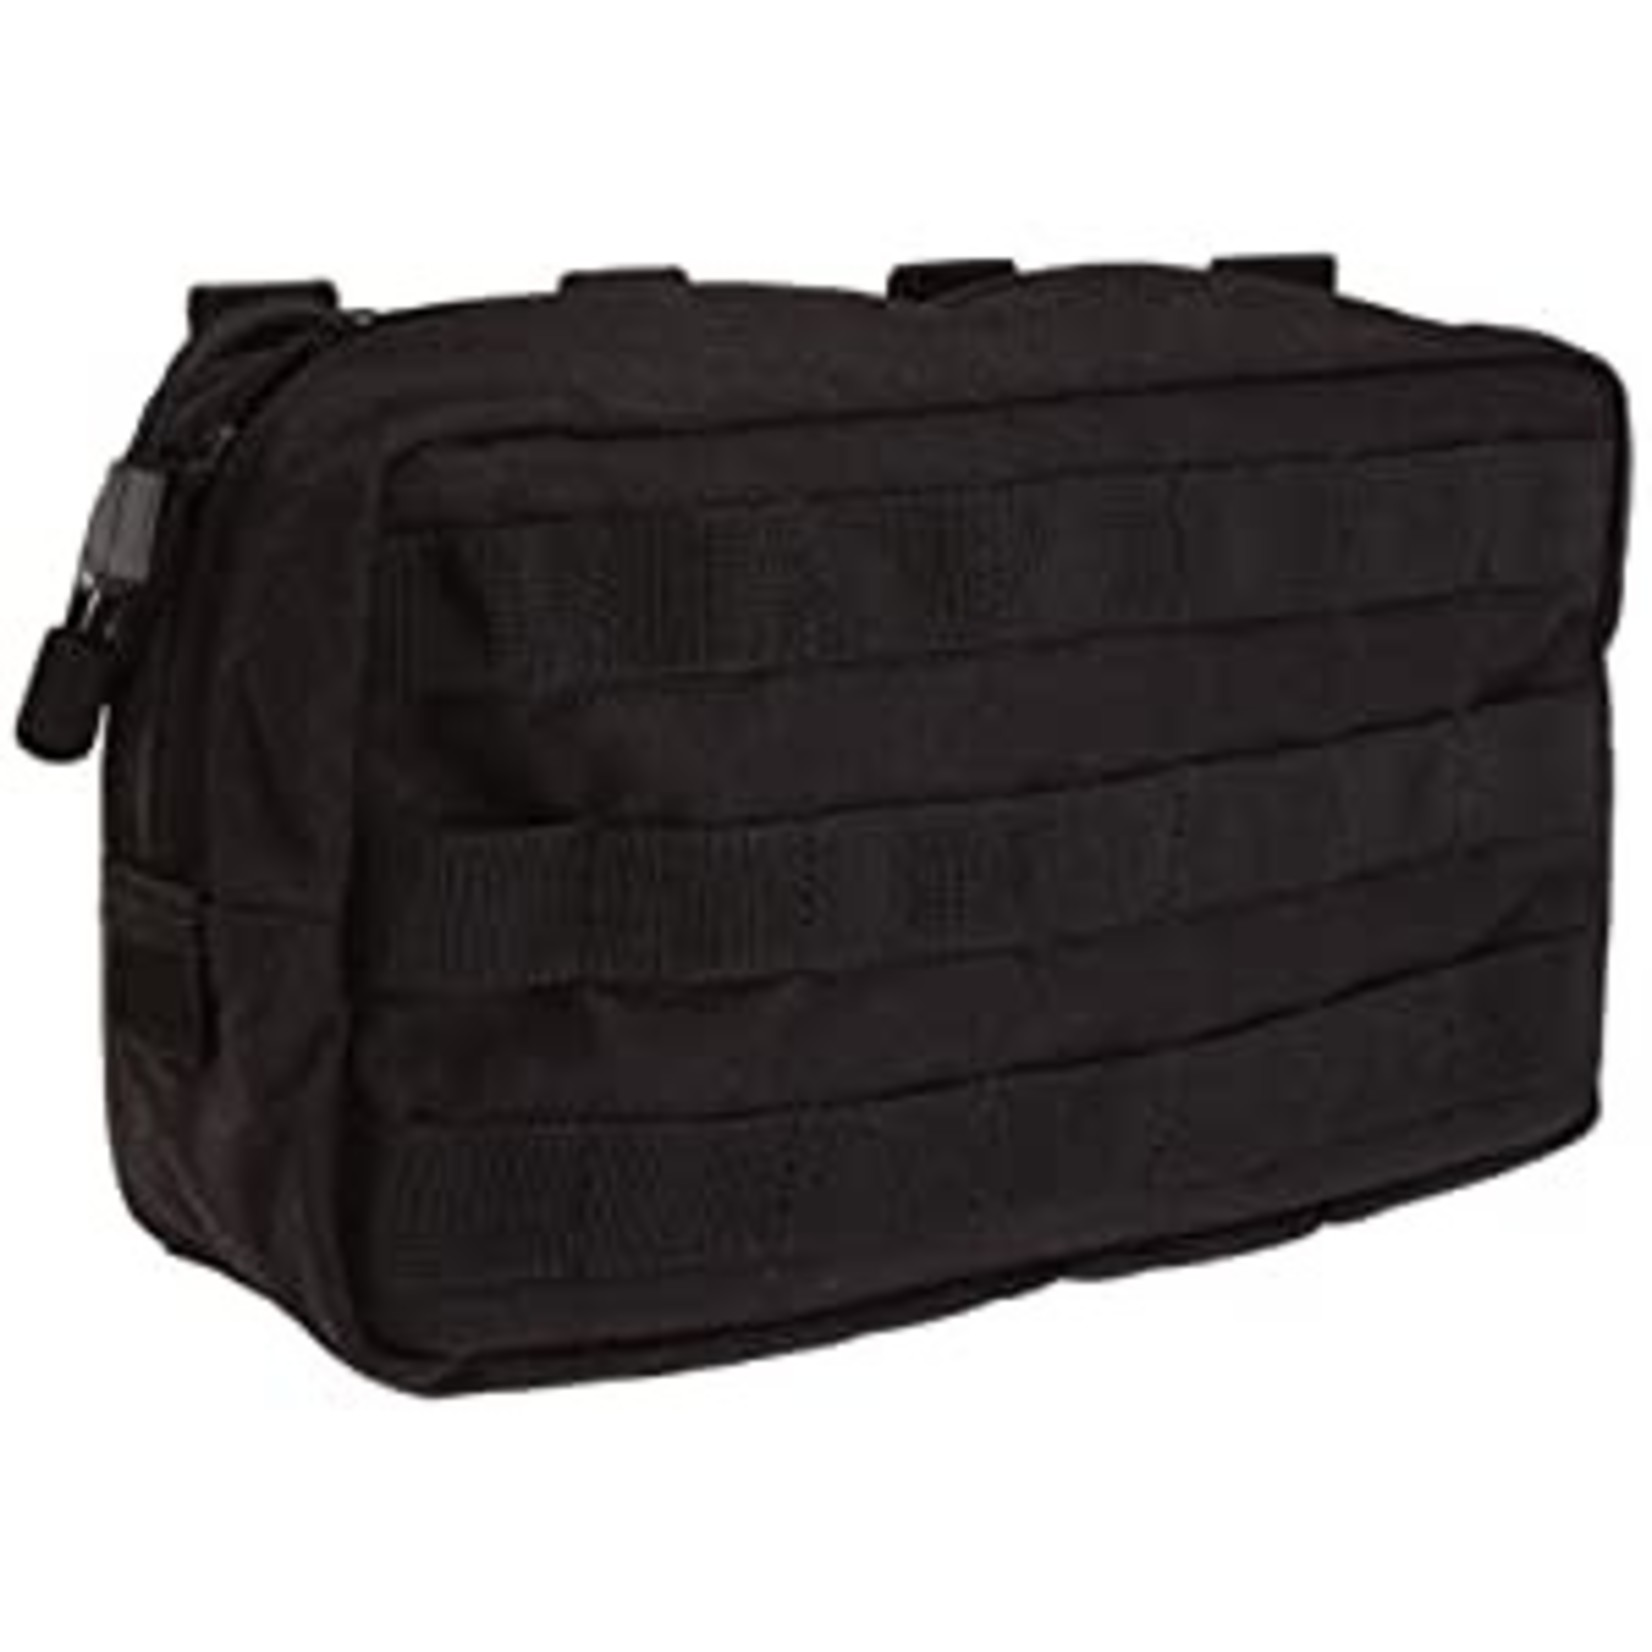 5.11 Tactical 5.11 10.6 Horizontal Pouch